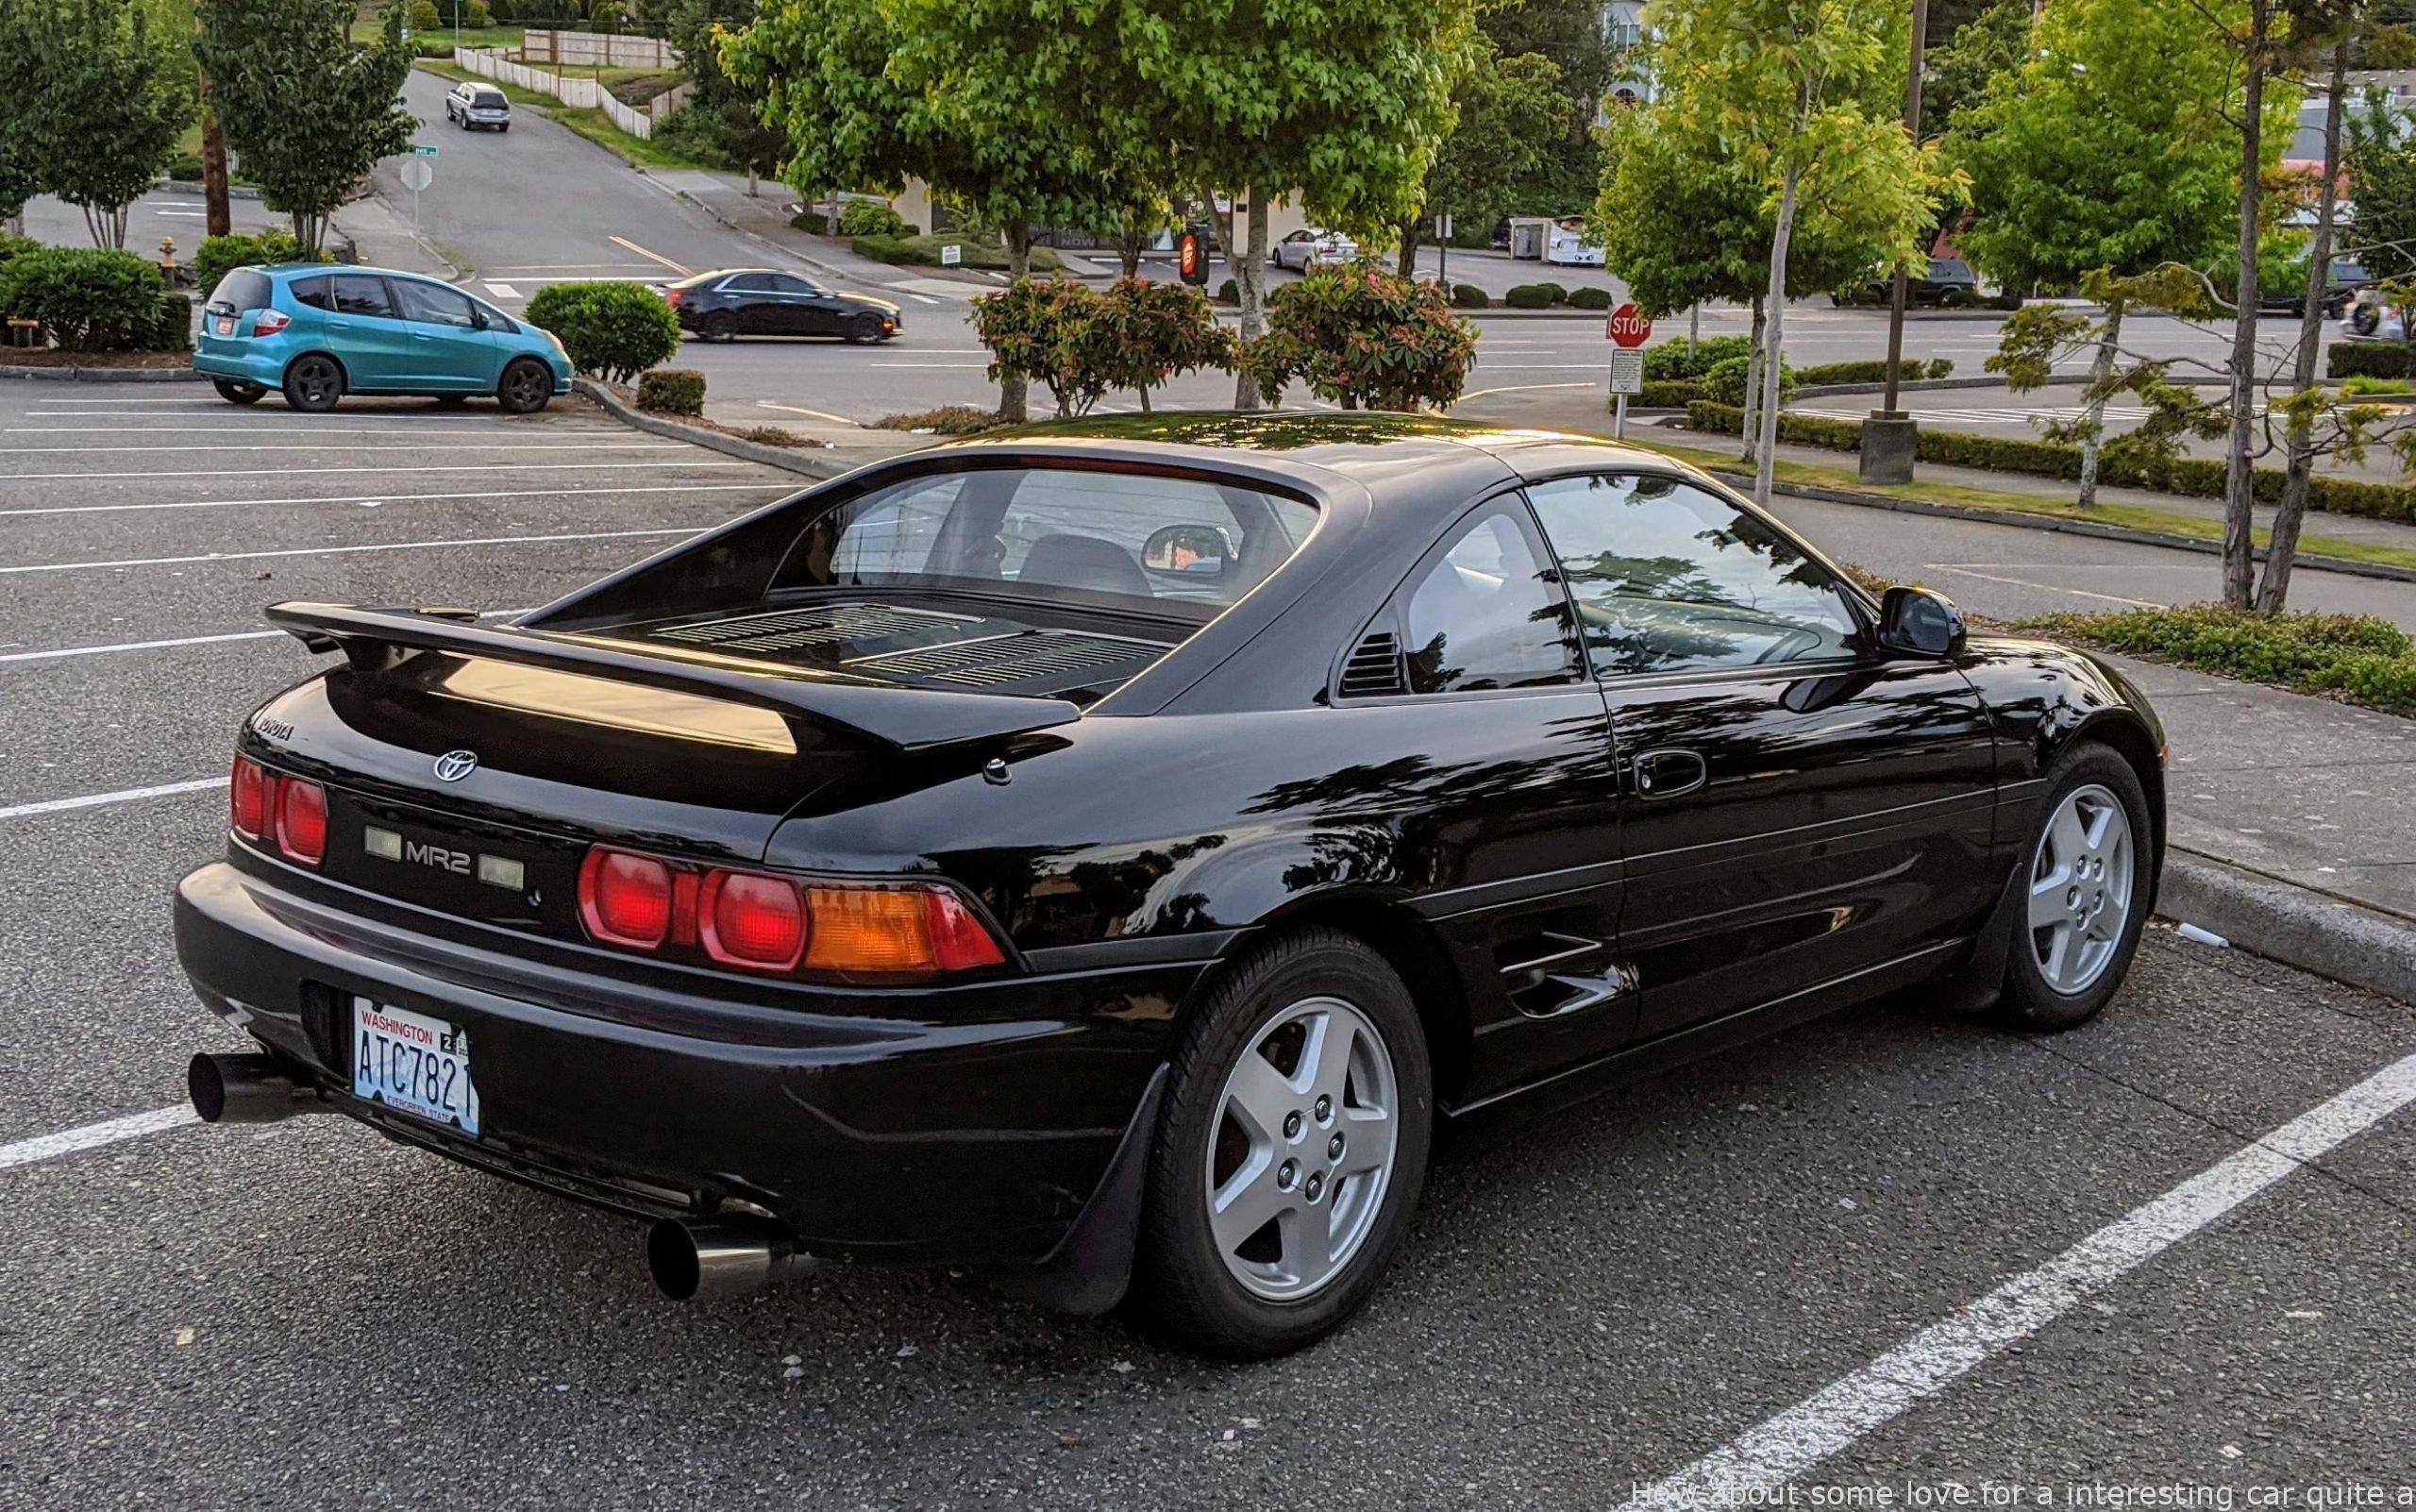 How About Some Love For A Interesting Car Quite A Few Men And Women Can Basically Pay For In 2020 Toyota Mr2 Shelby Car Motor Car